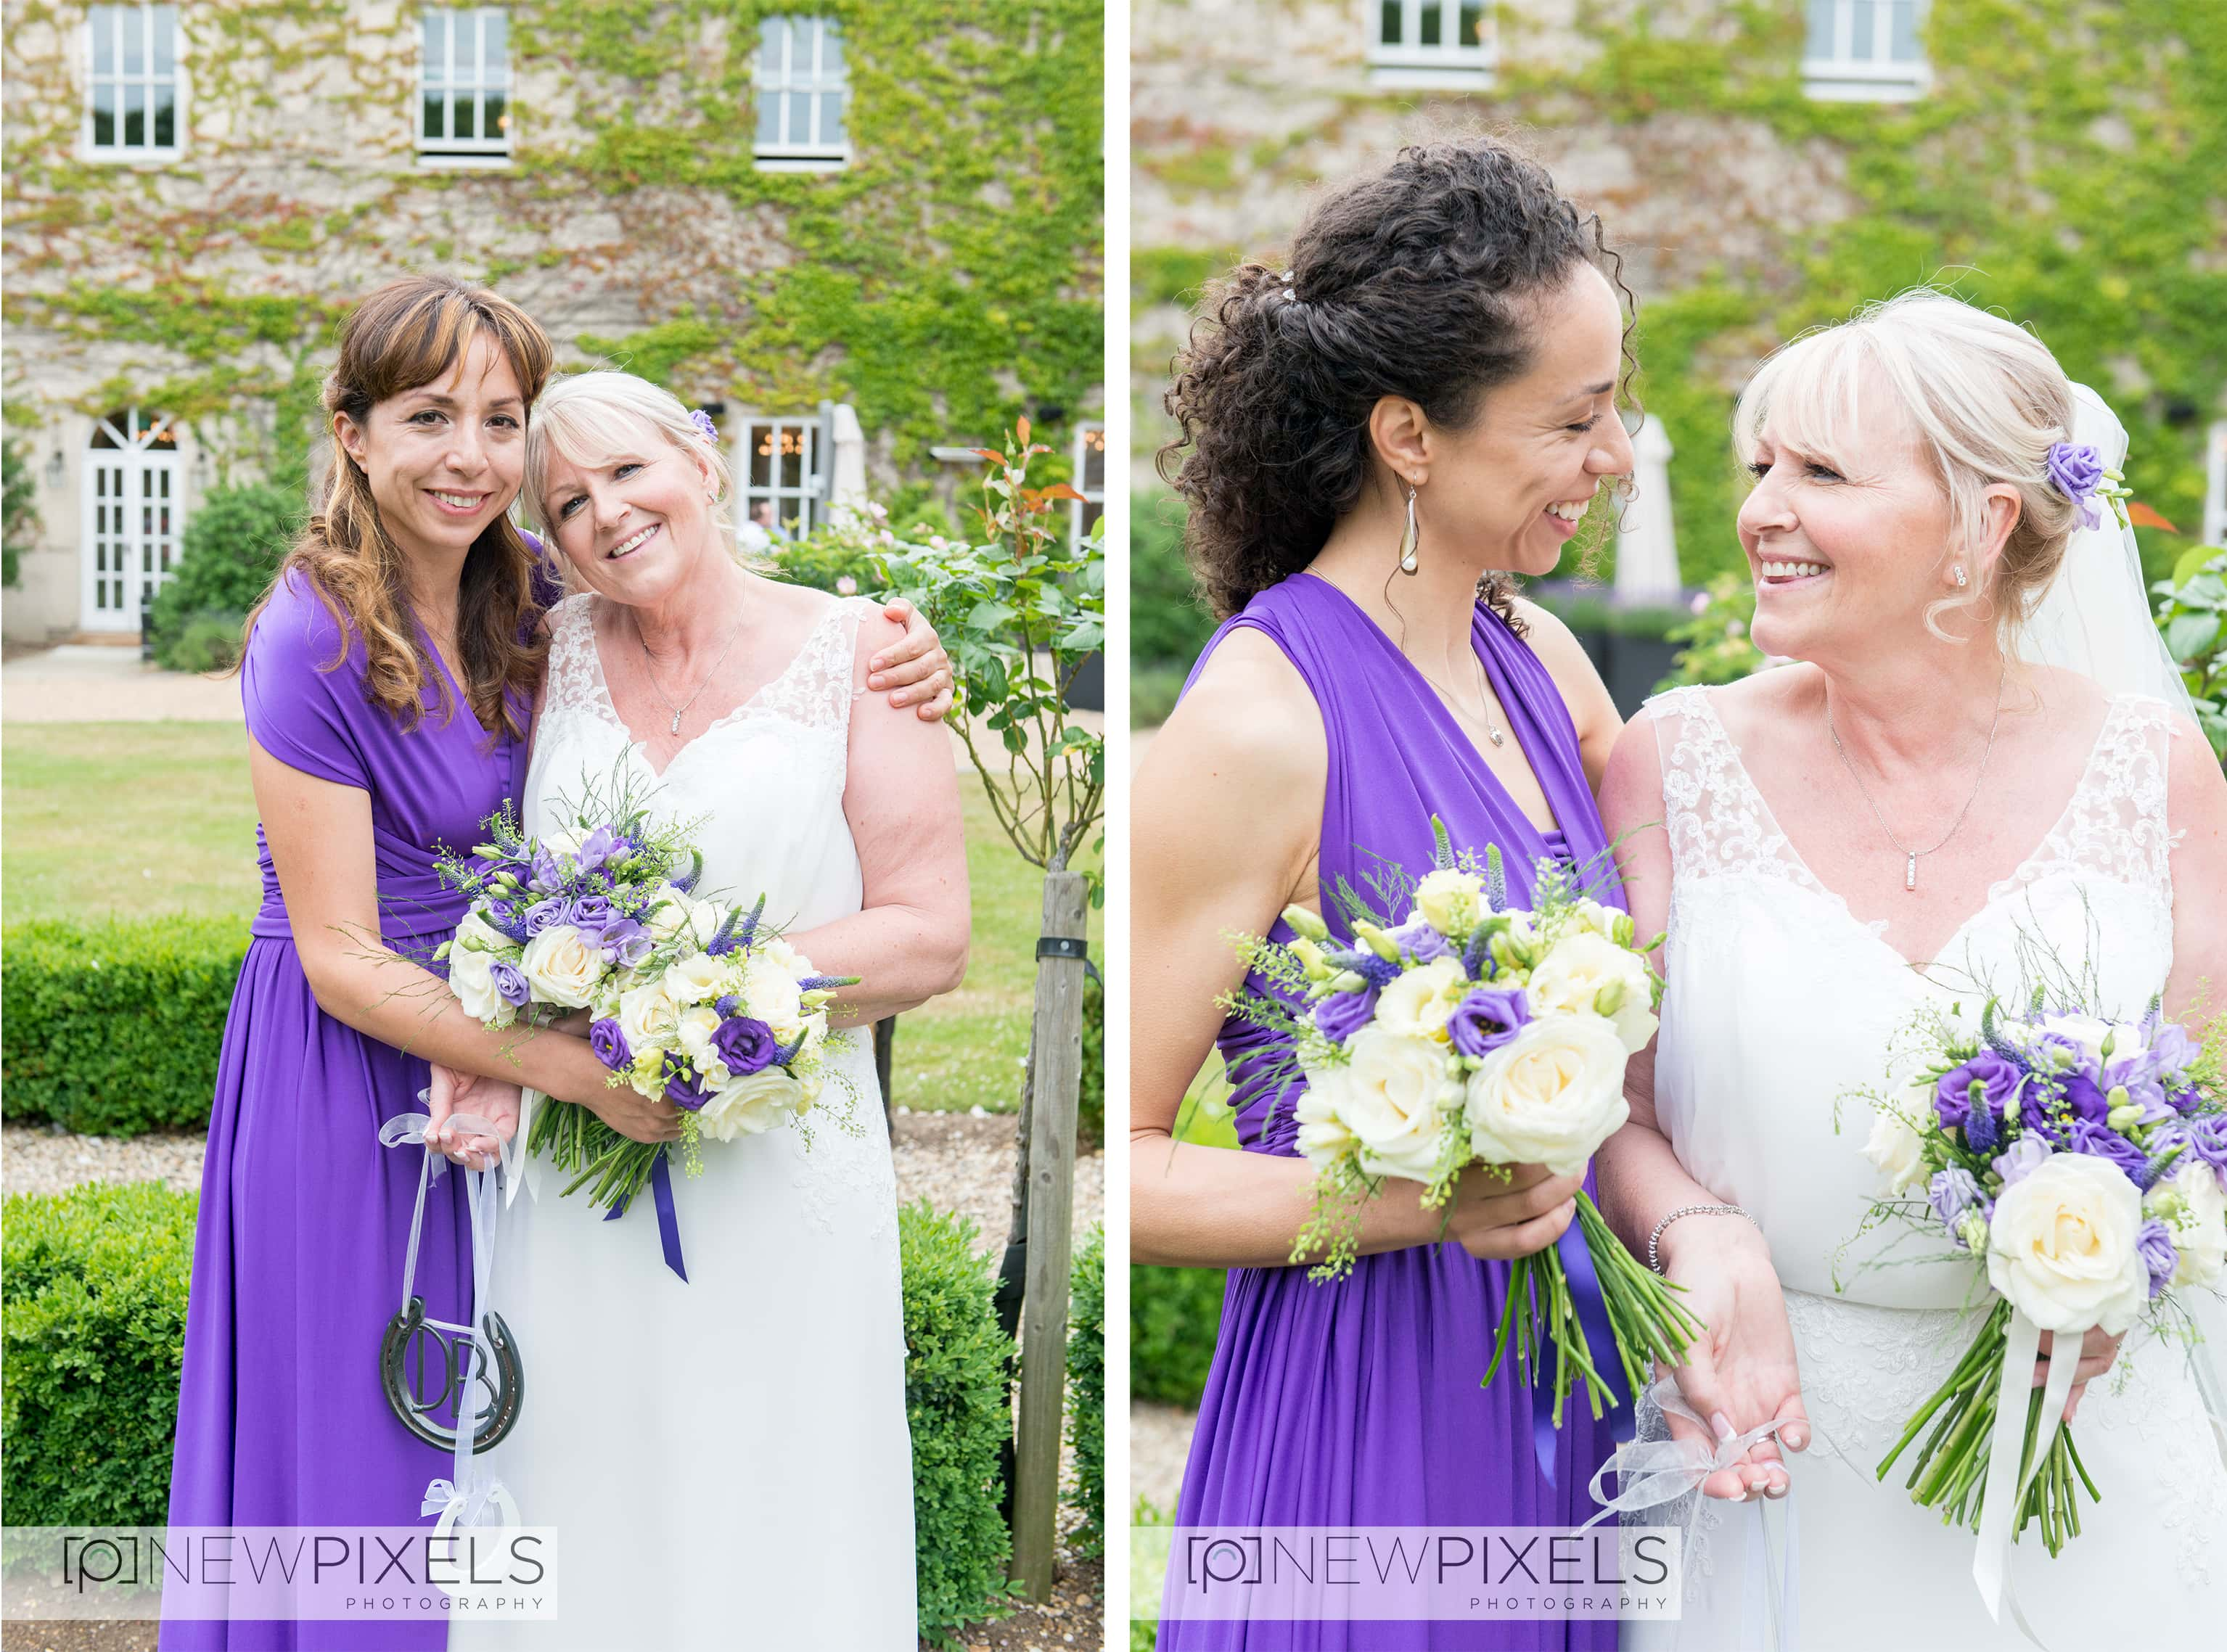 downhall wedding photographer11